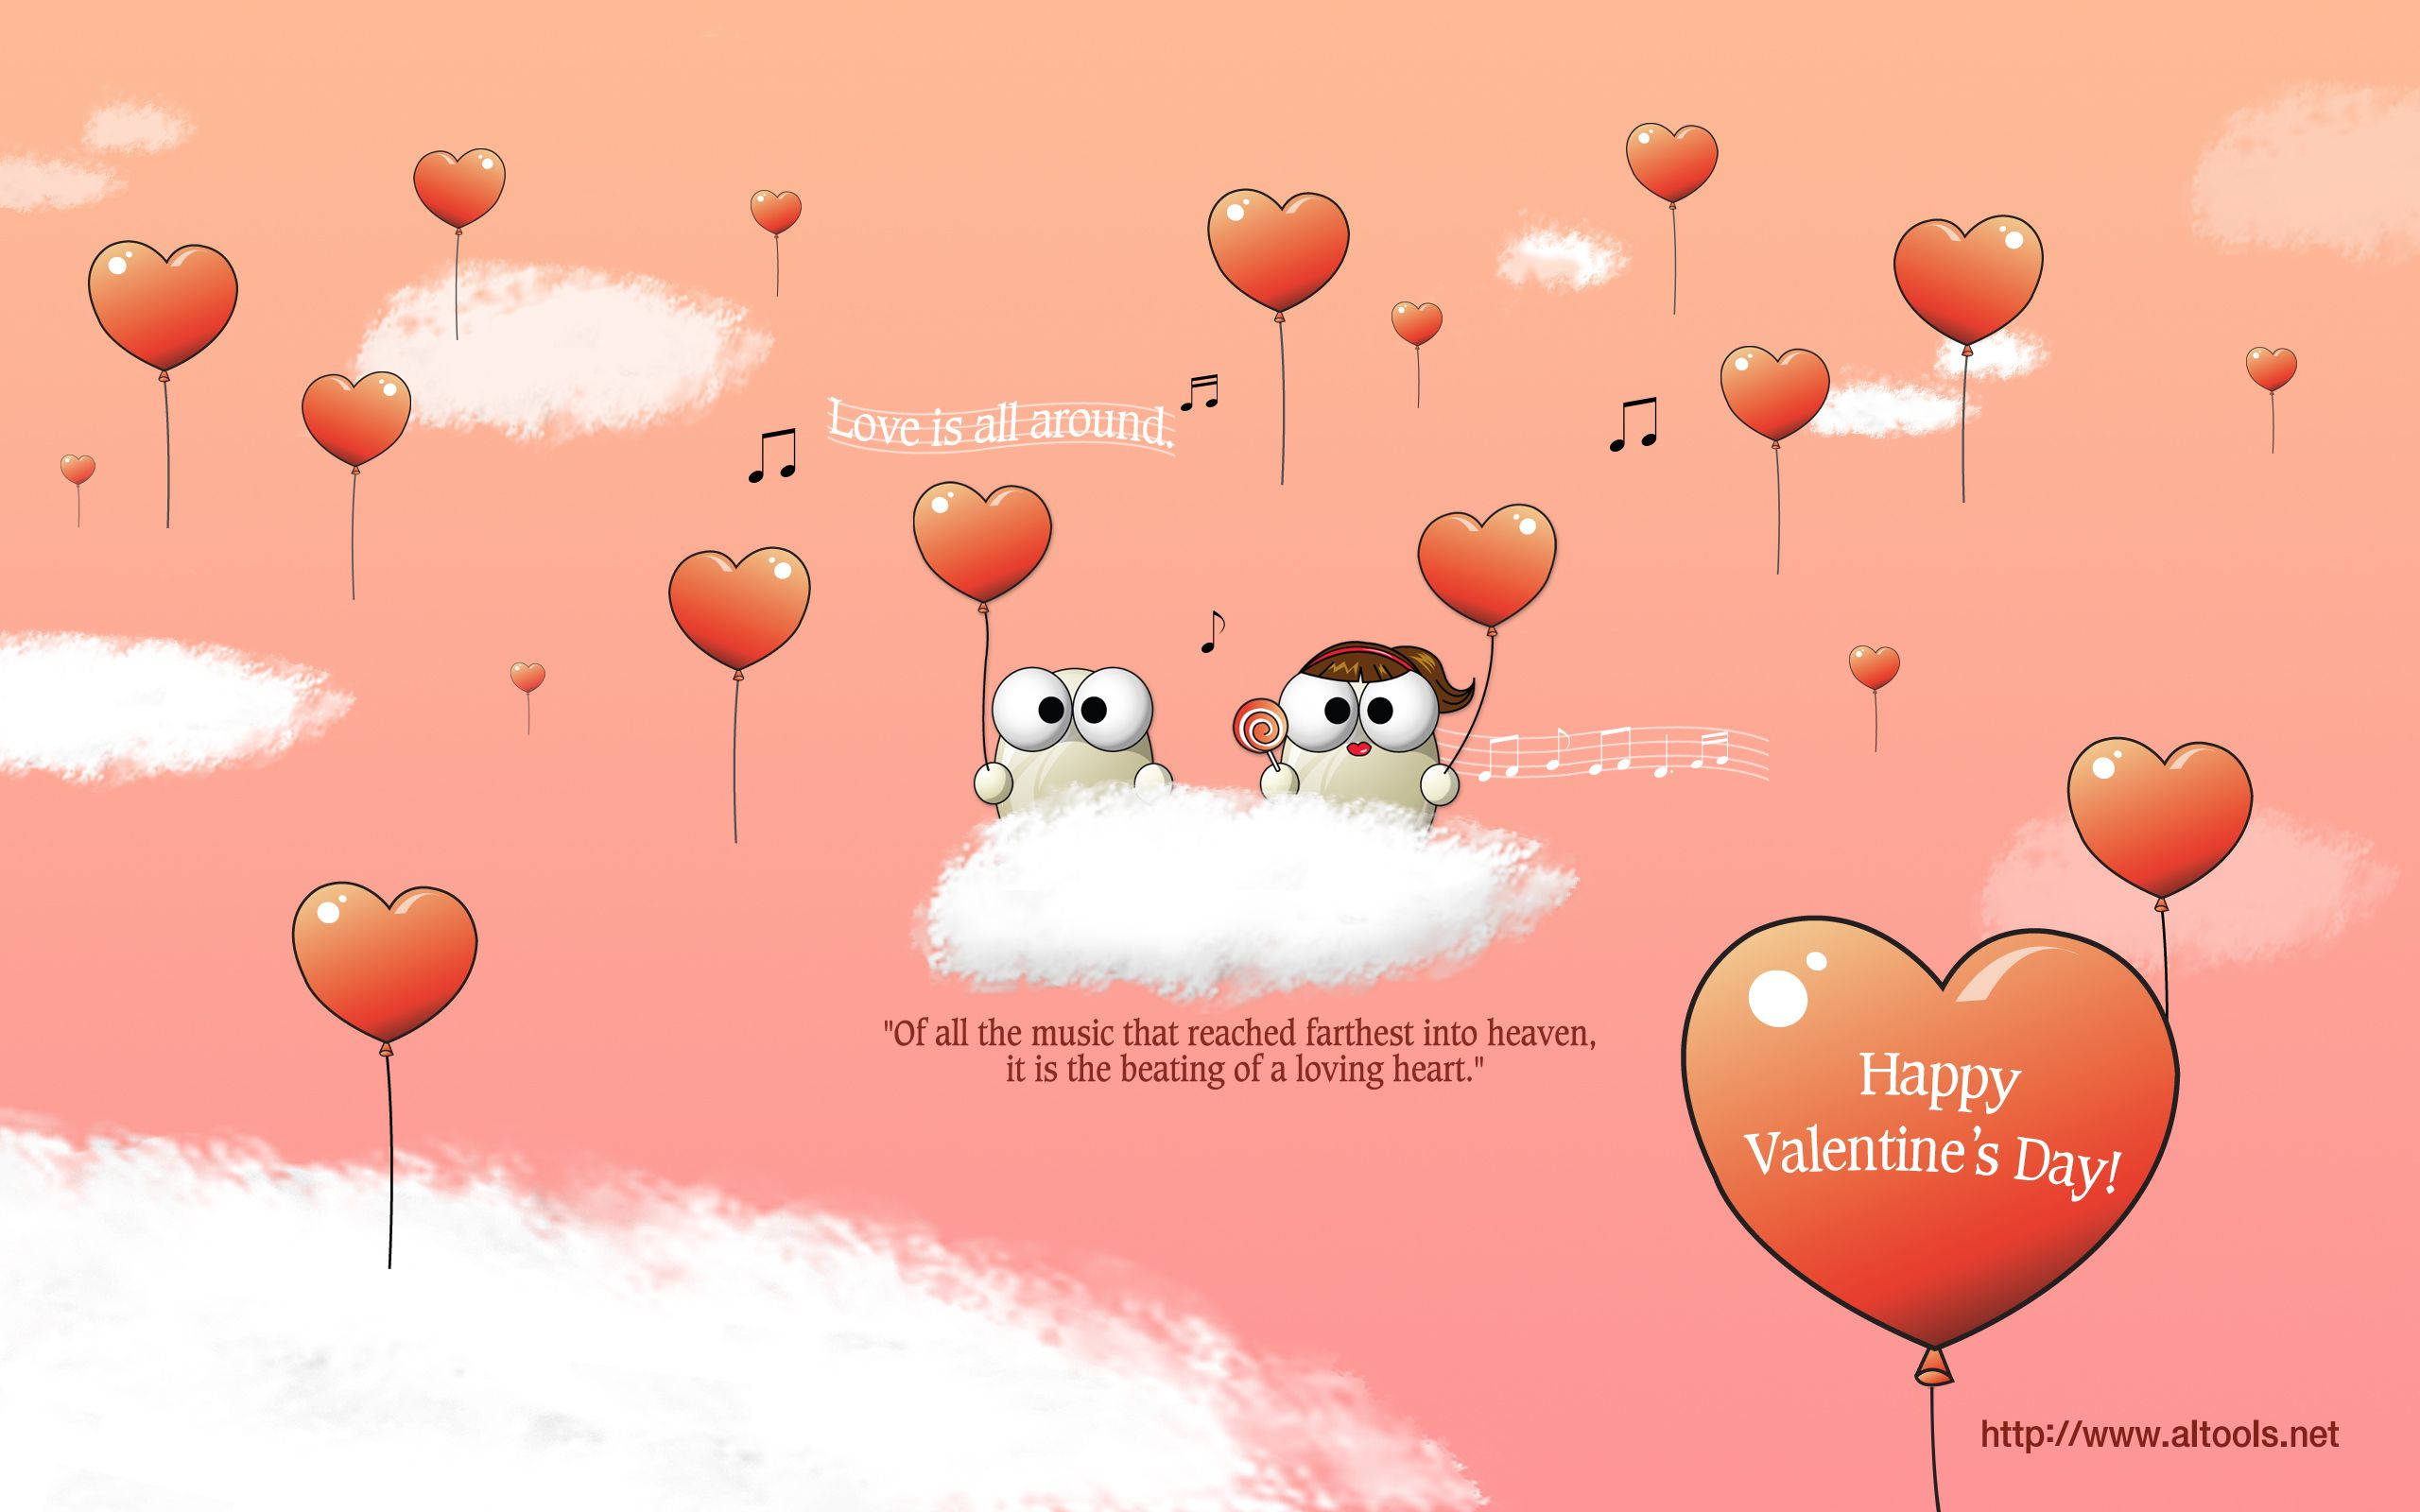 Funny Valentine Day Wallpapers - Top Free Funny Valentine